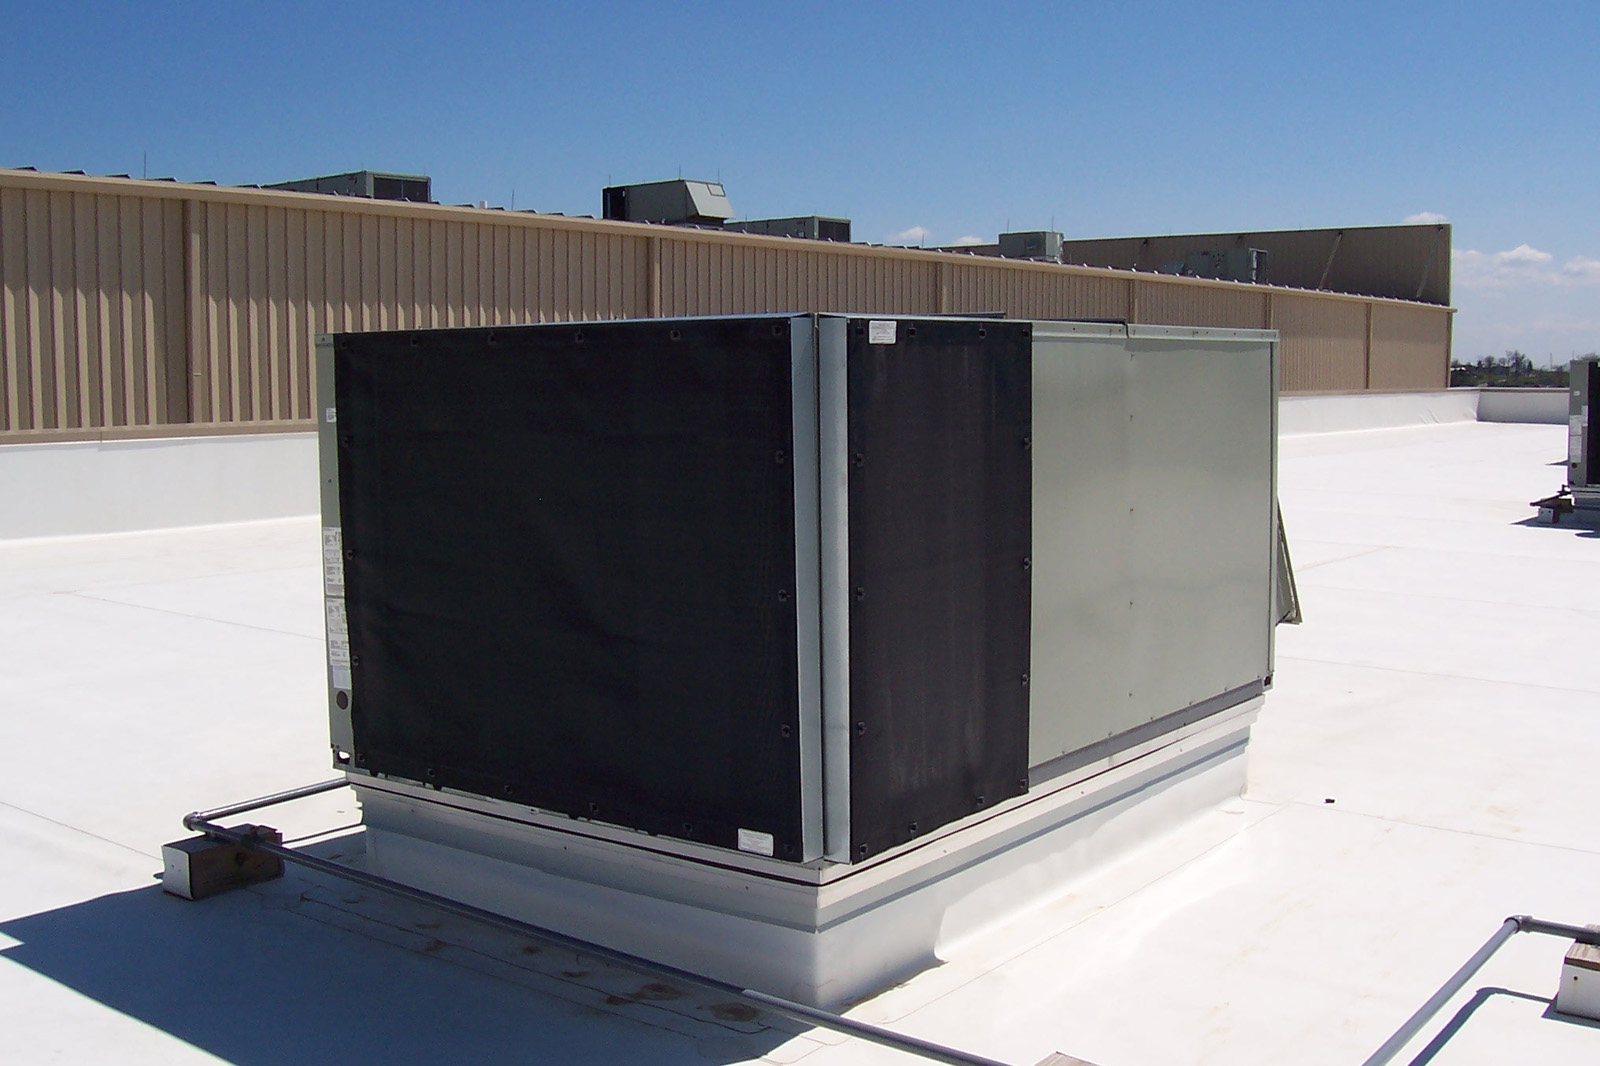 Commercial rooftop HVAC Unit